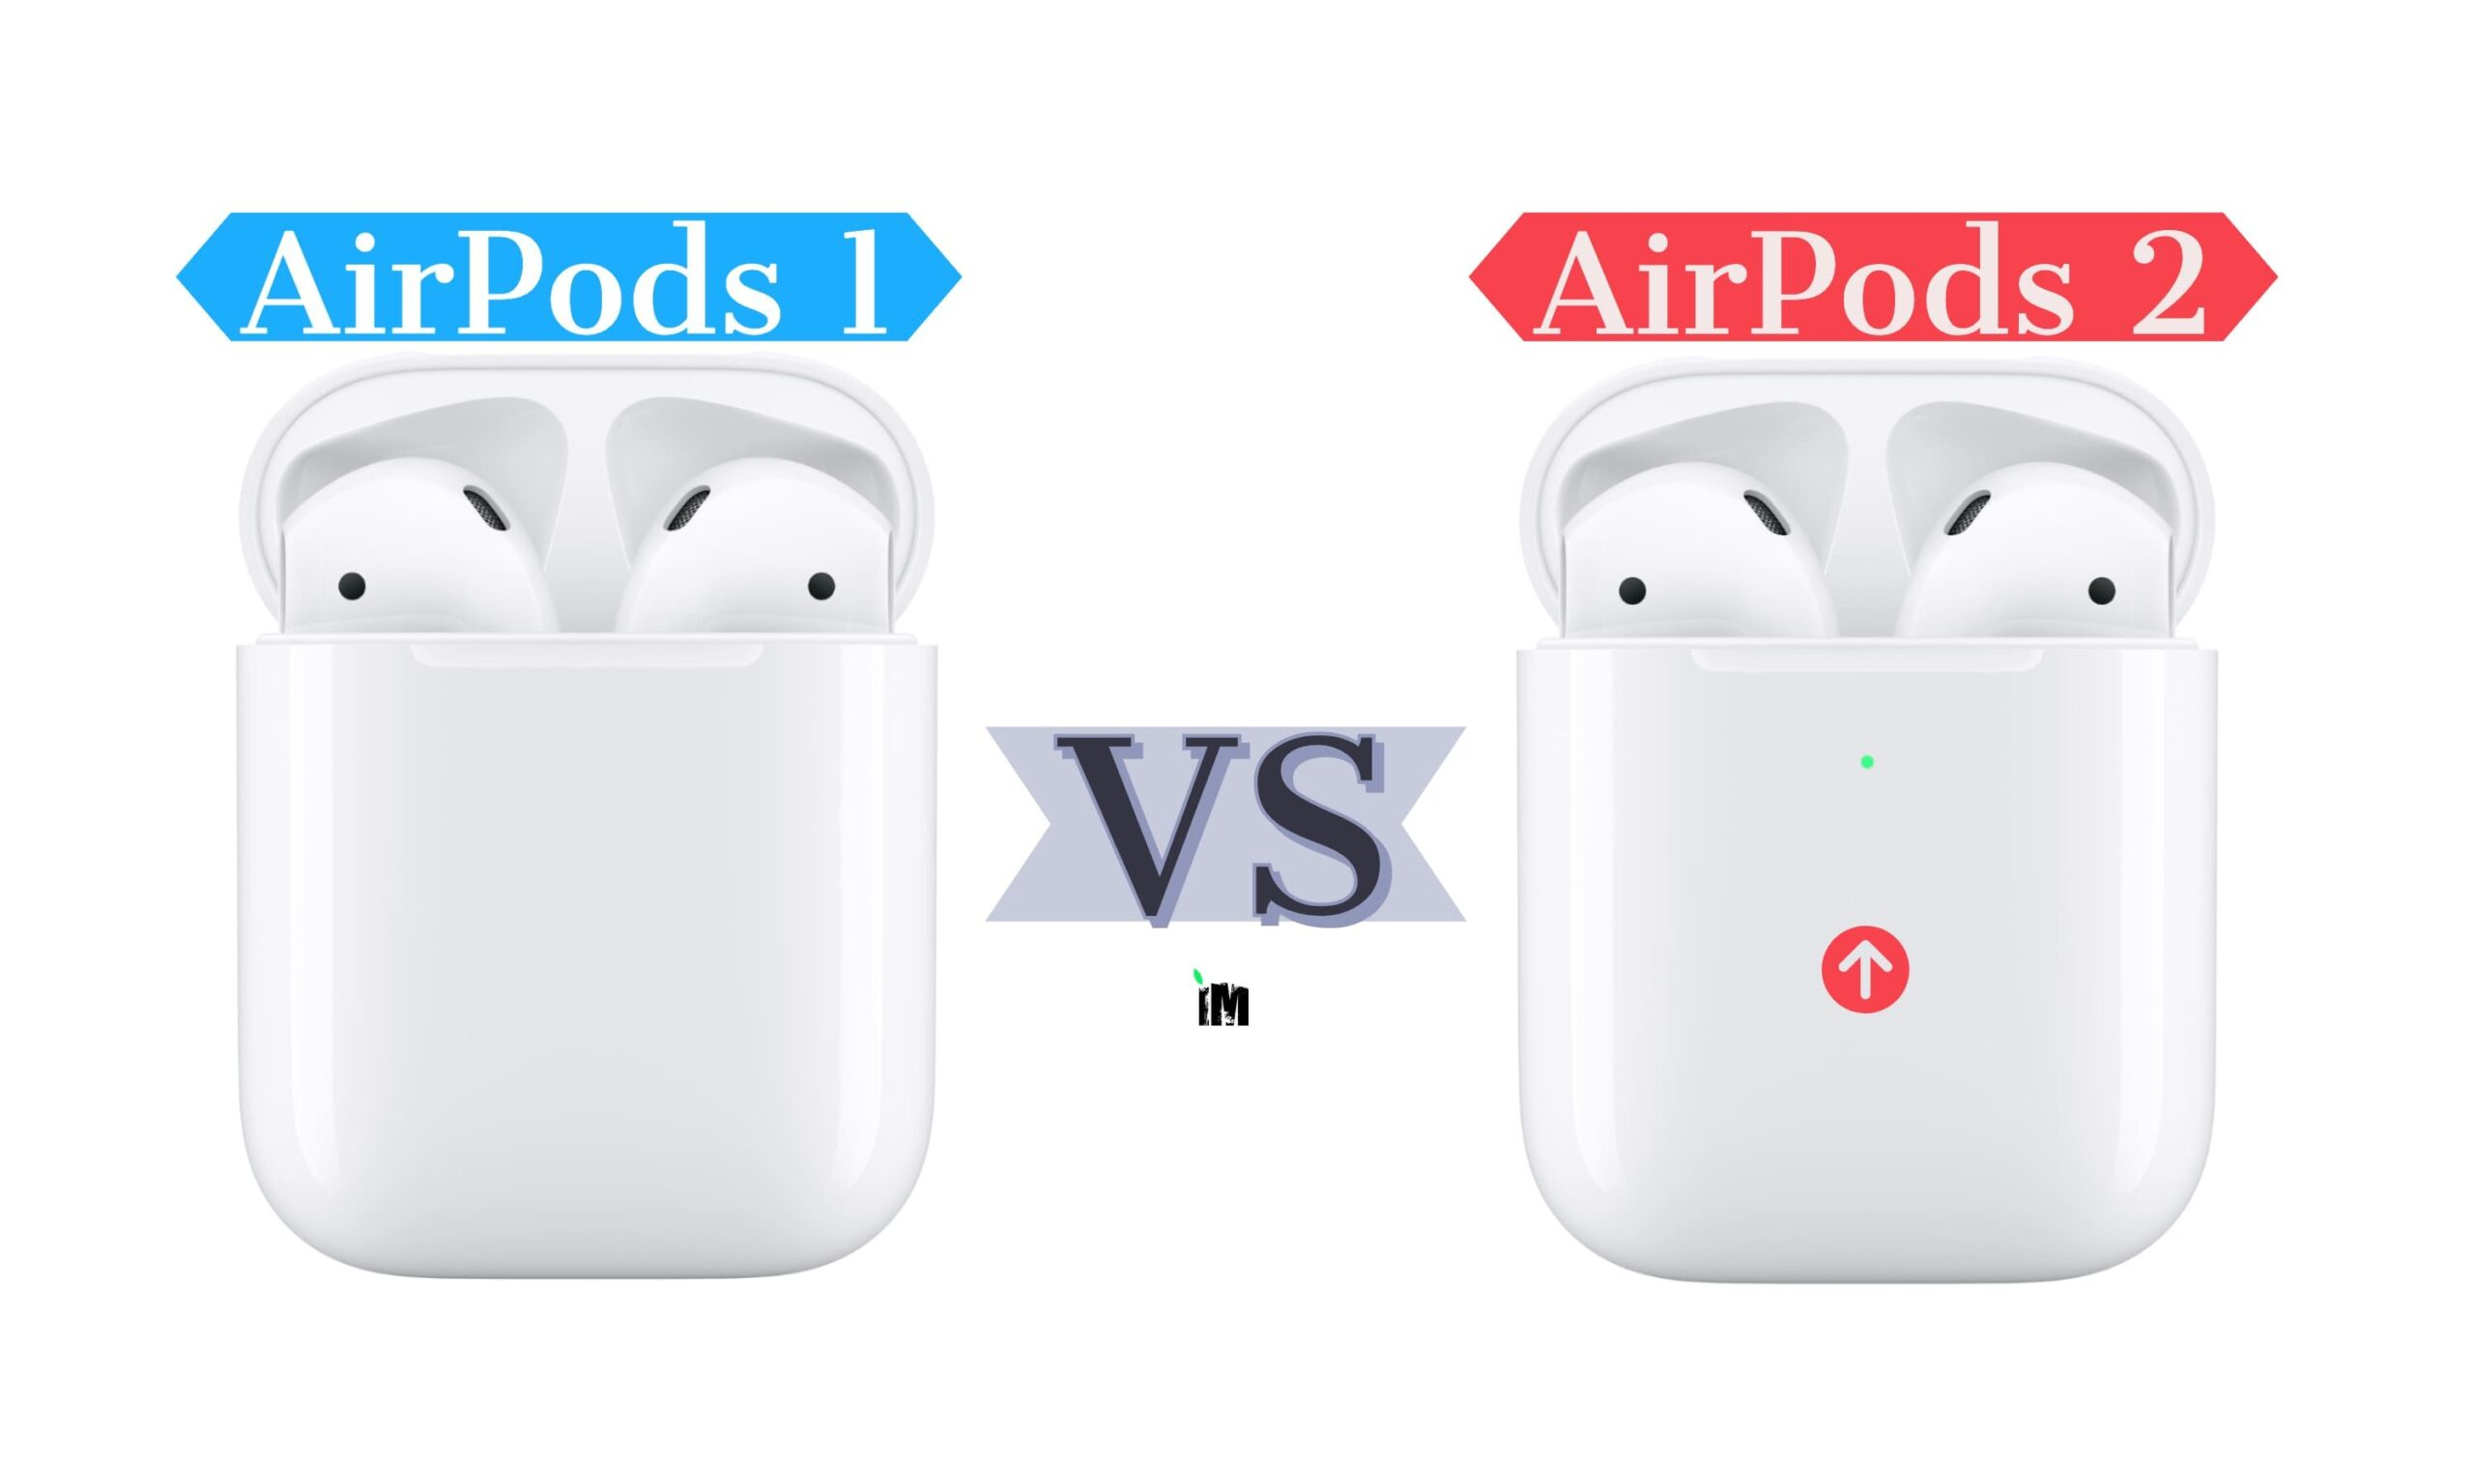 difference between 1st and 2nd generation airpods